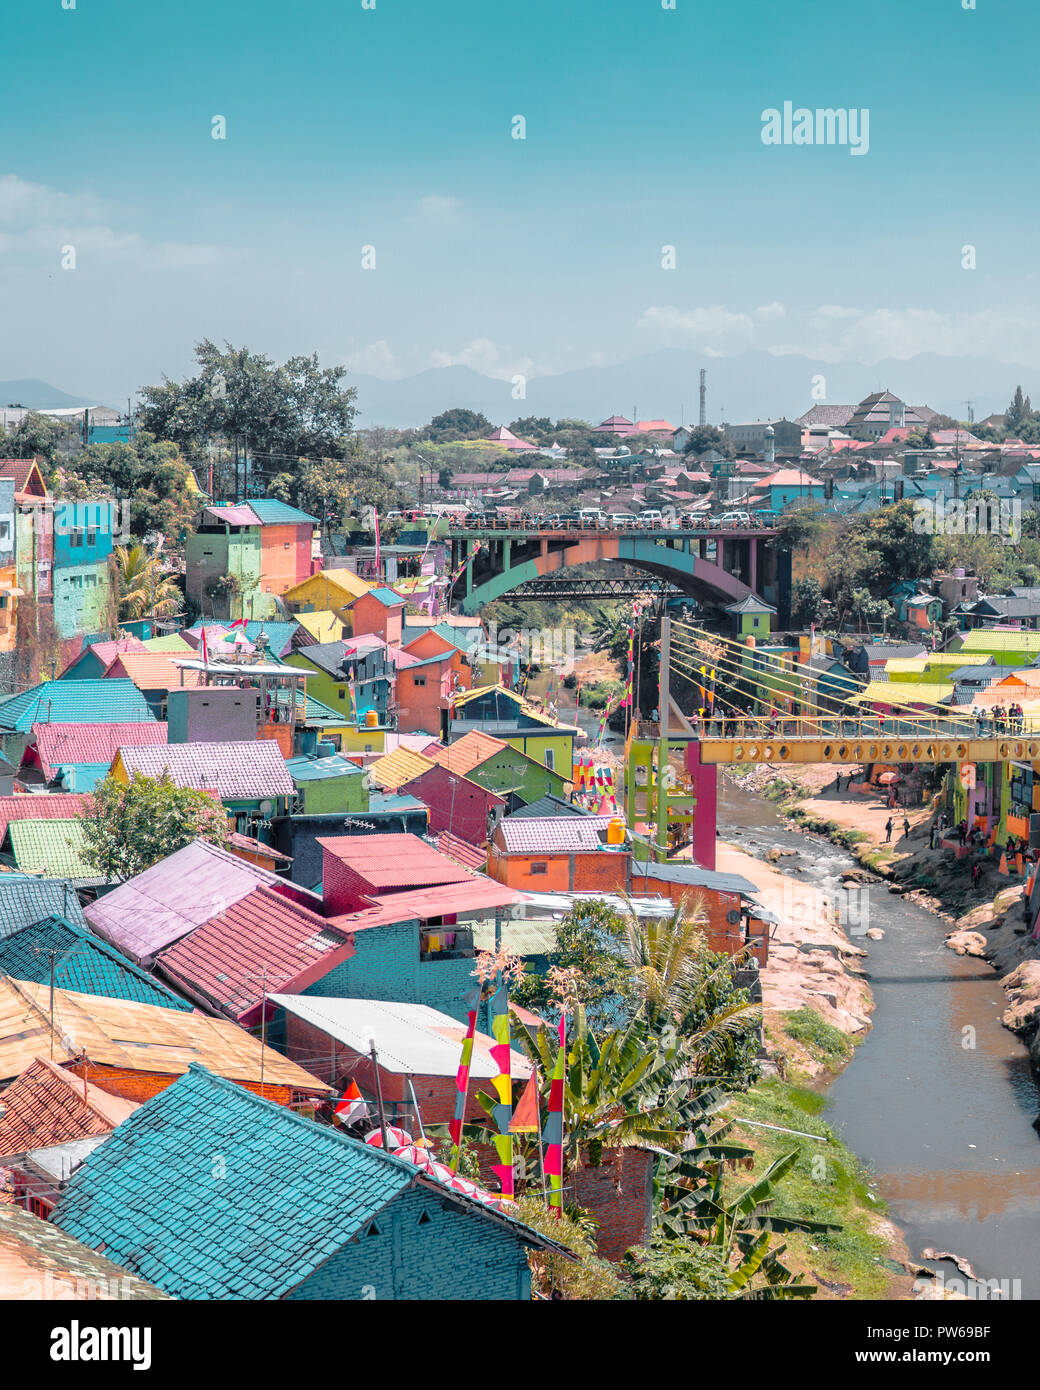 A View Of Colorful Village Of Jodipan This Village Located In The Middle Of Malang City East Java Indonesia Stock Photo Alamy